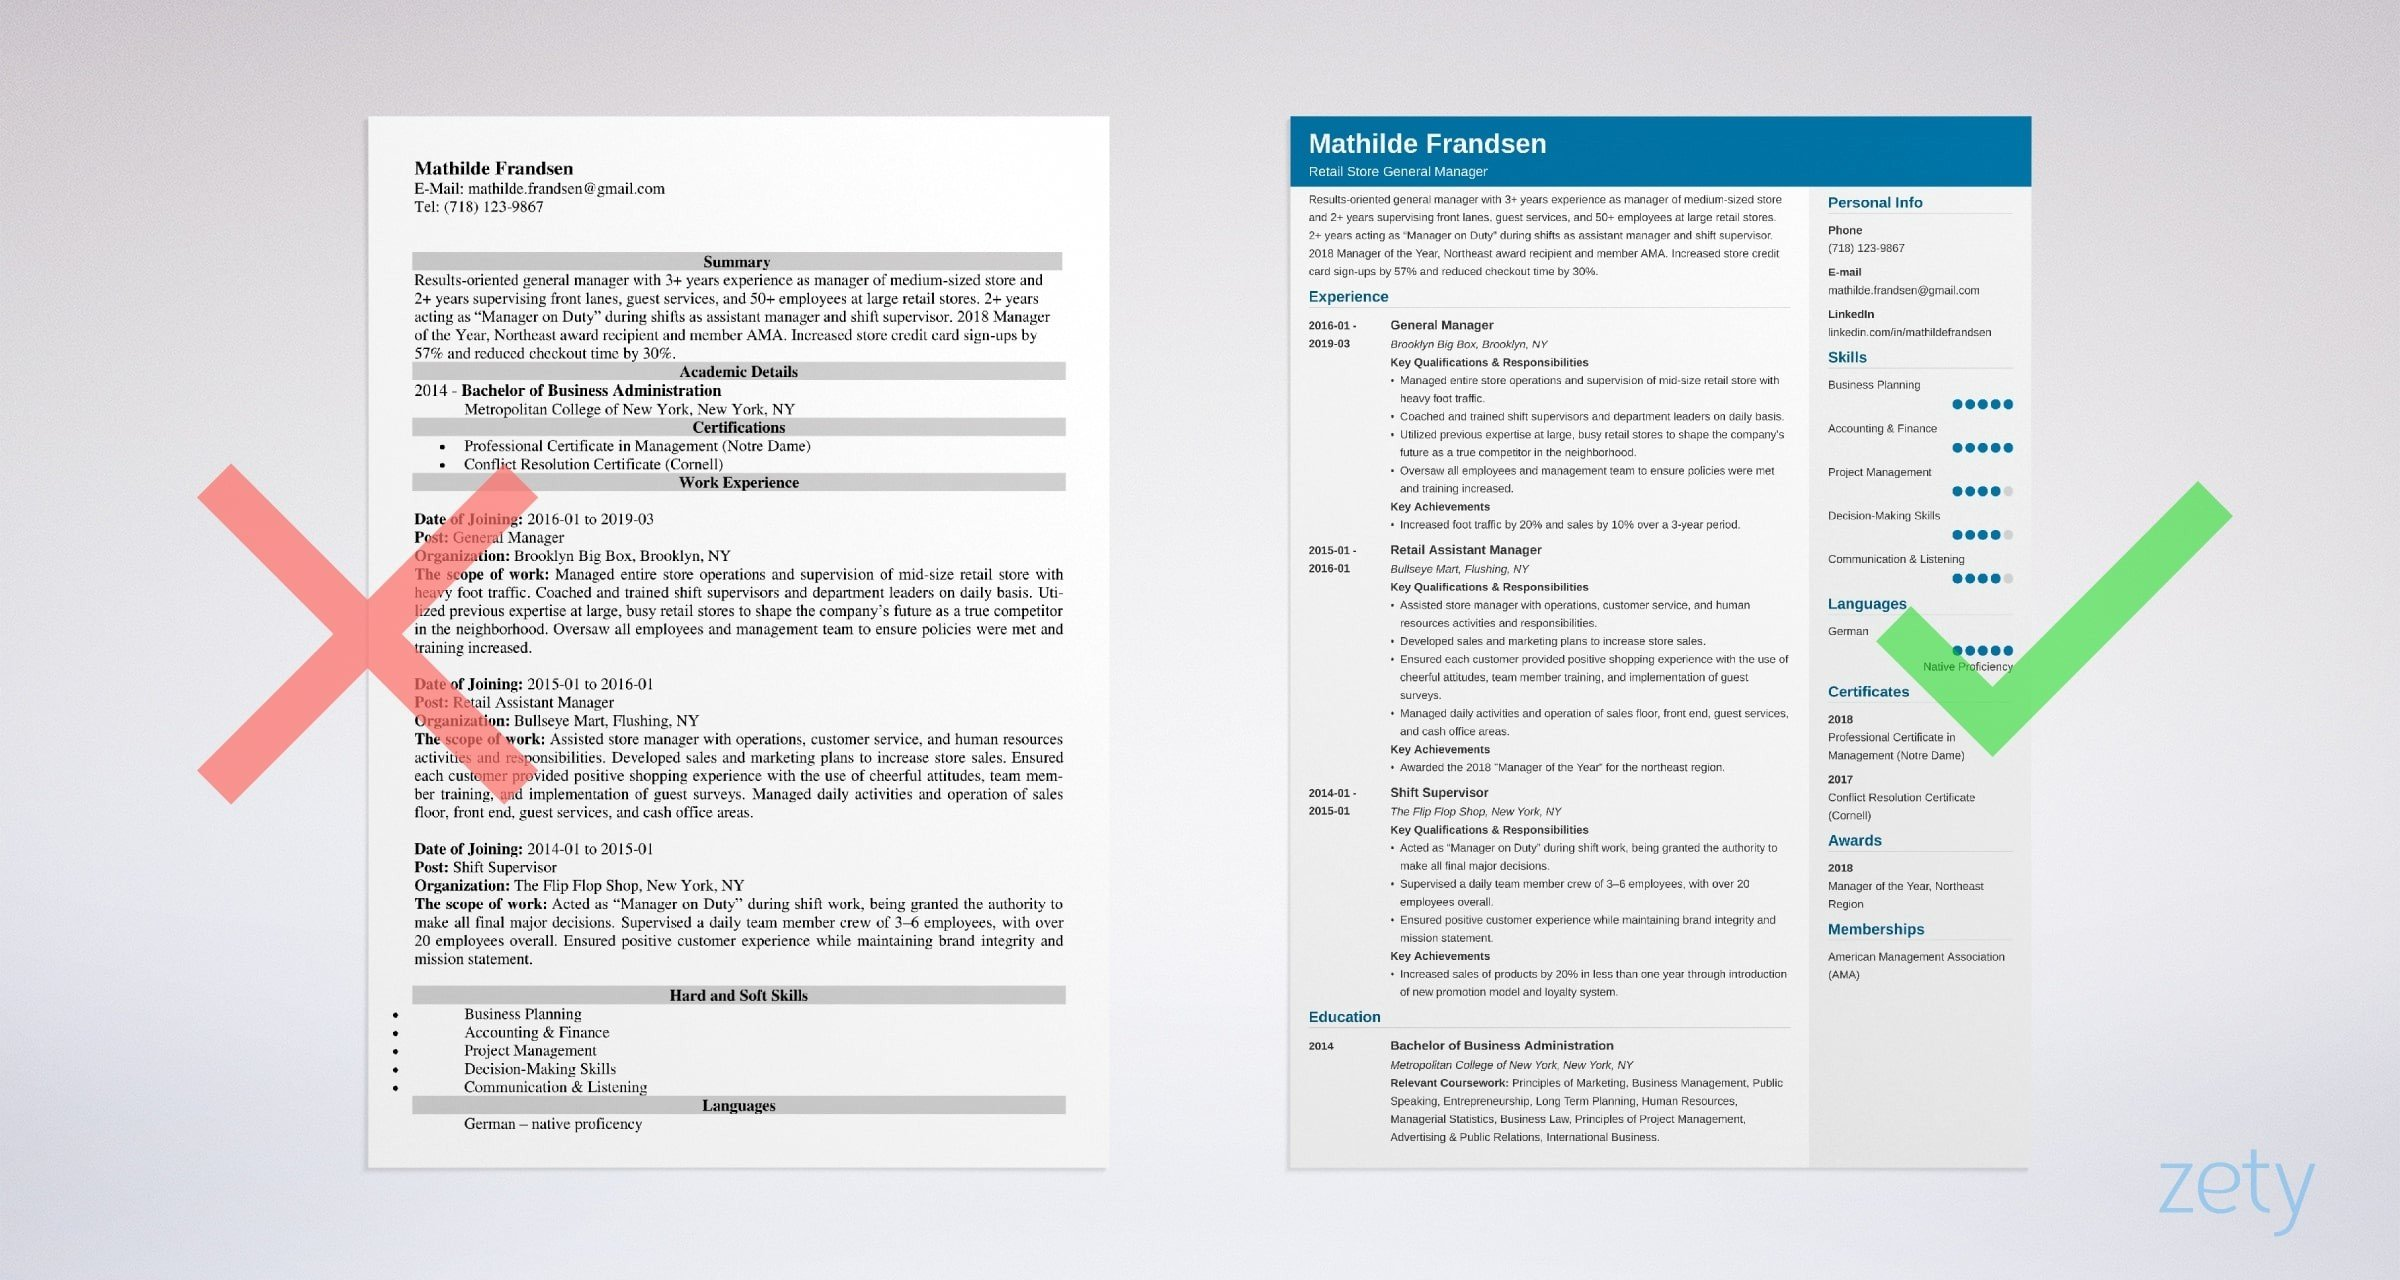 general manager resume template guide examples example telugu teacher case management Resume General Manager Resume Examples